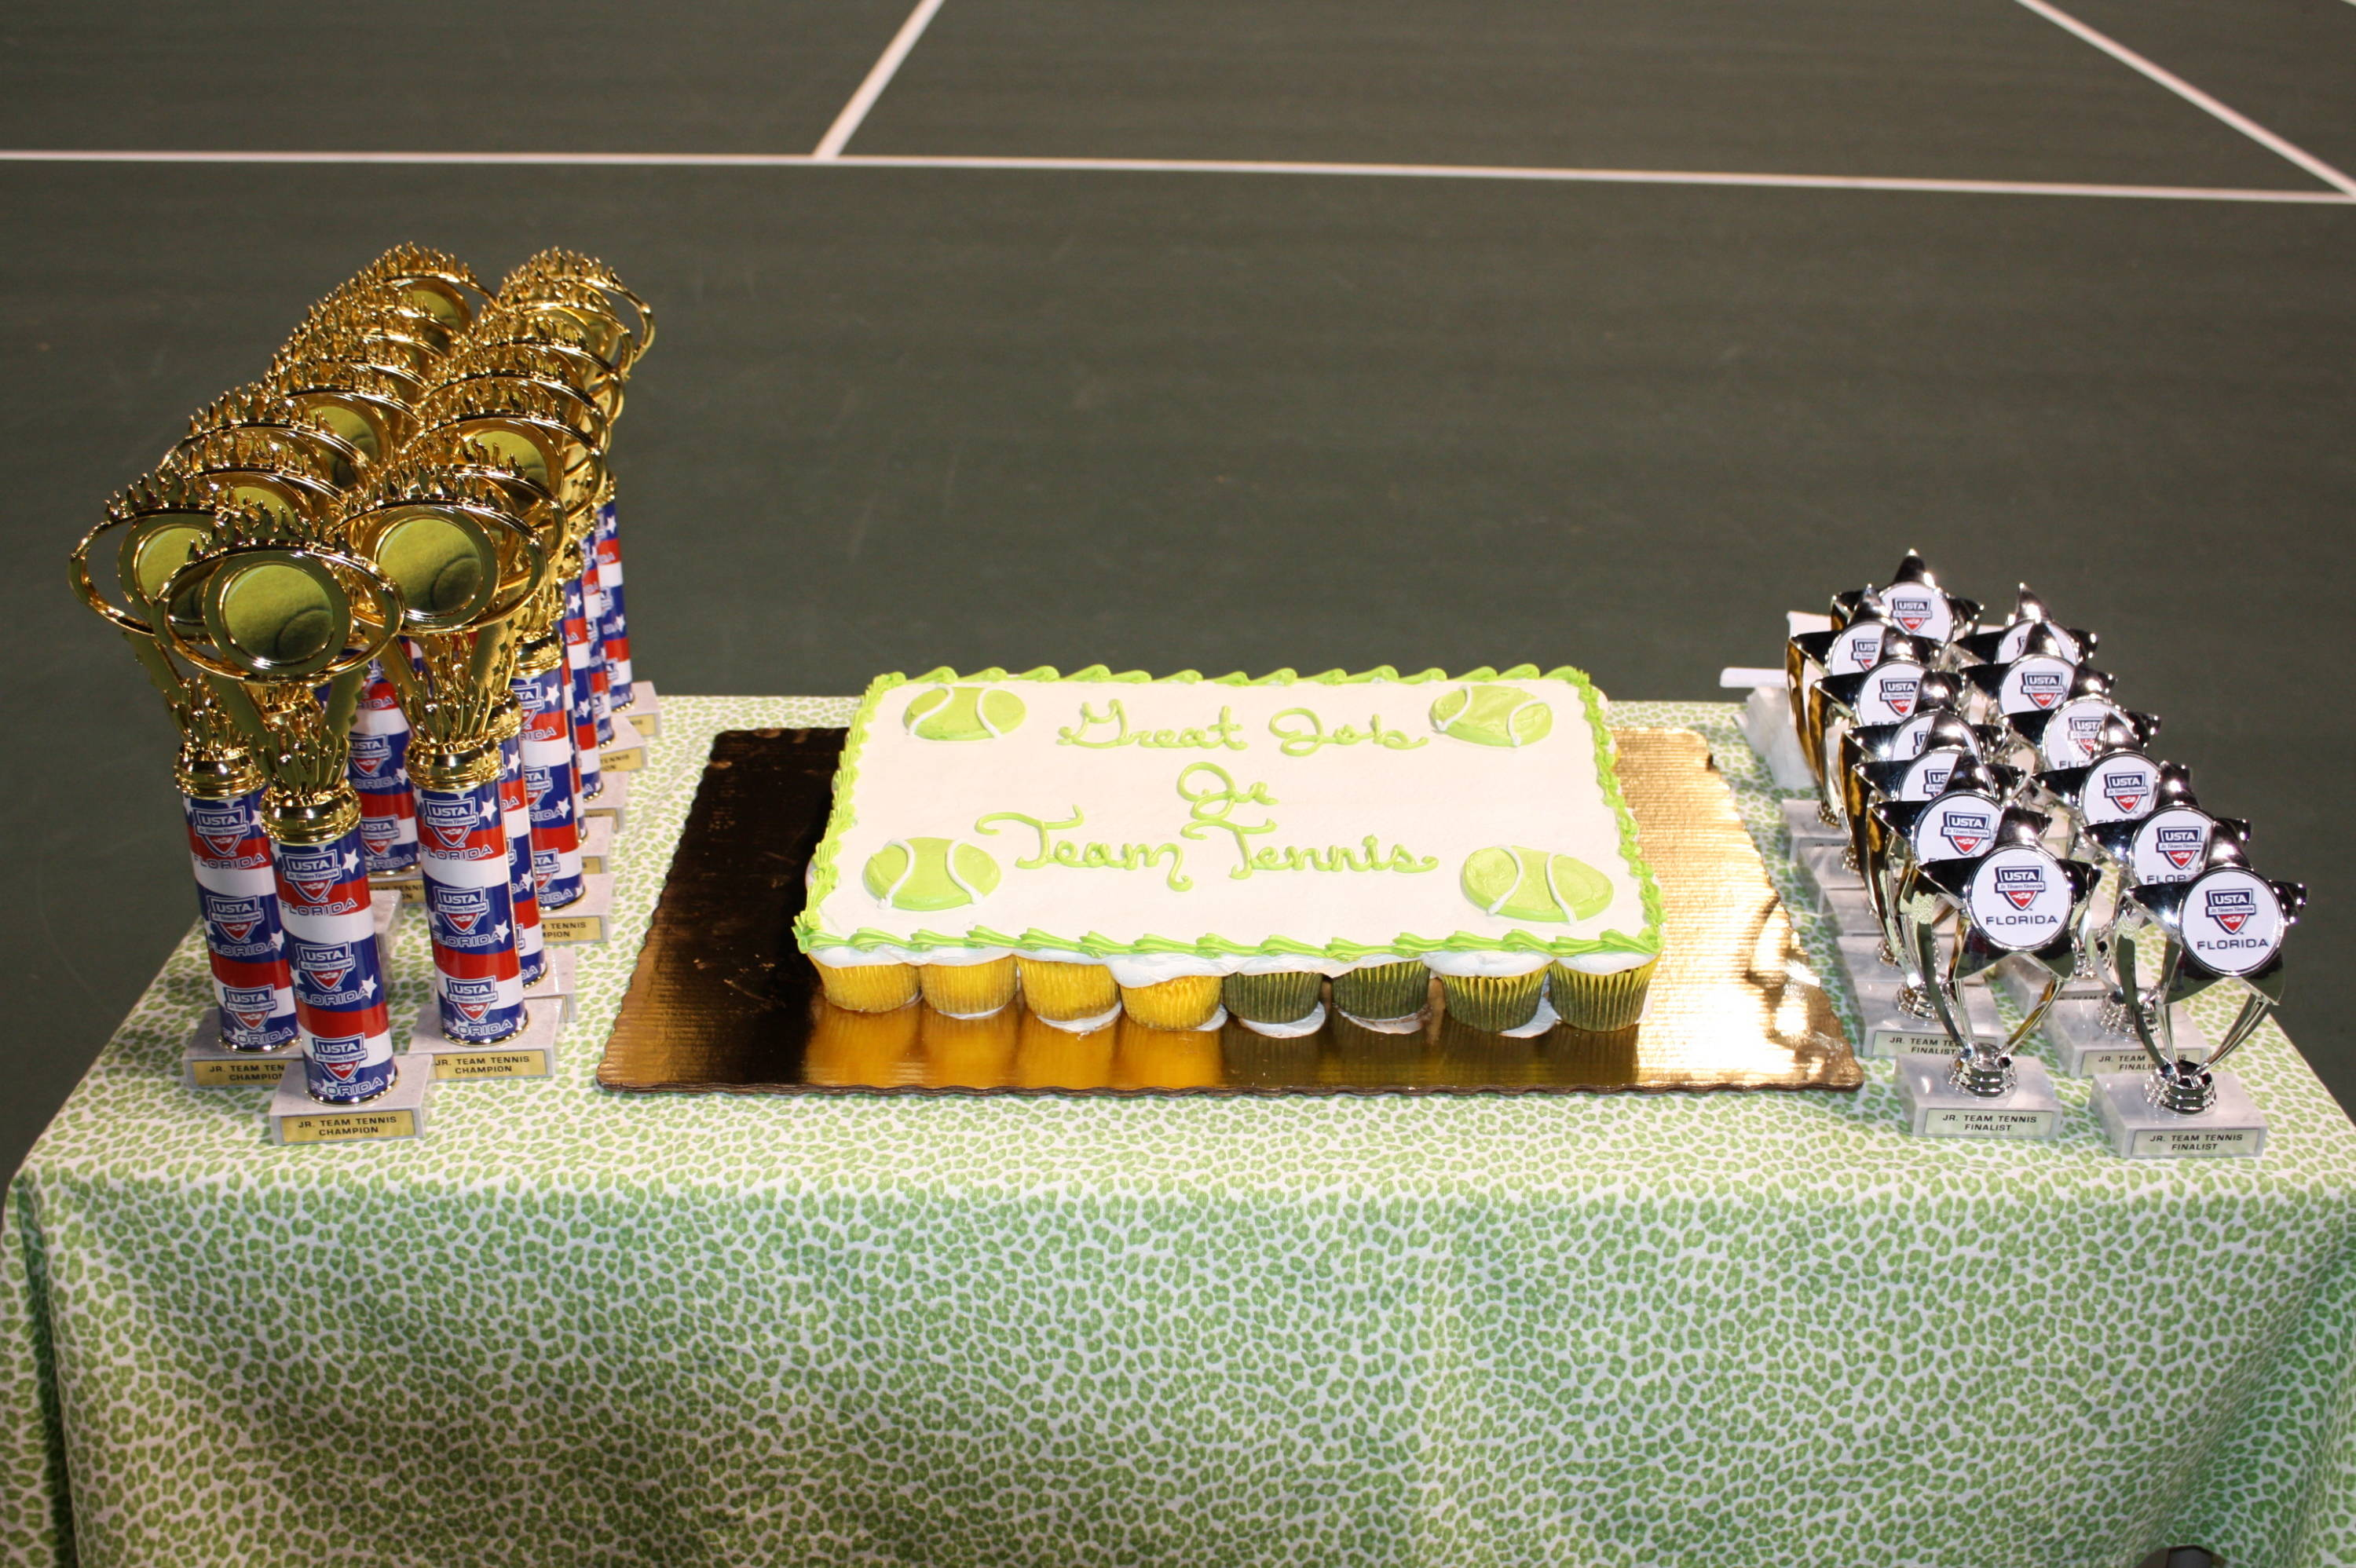 Trophies and cupcakes